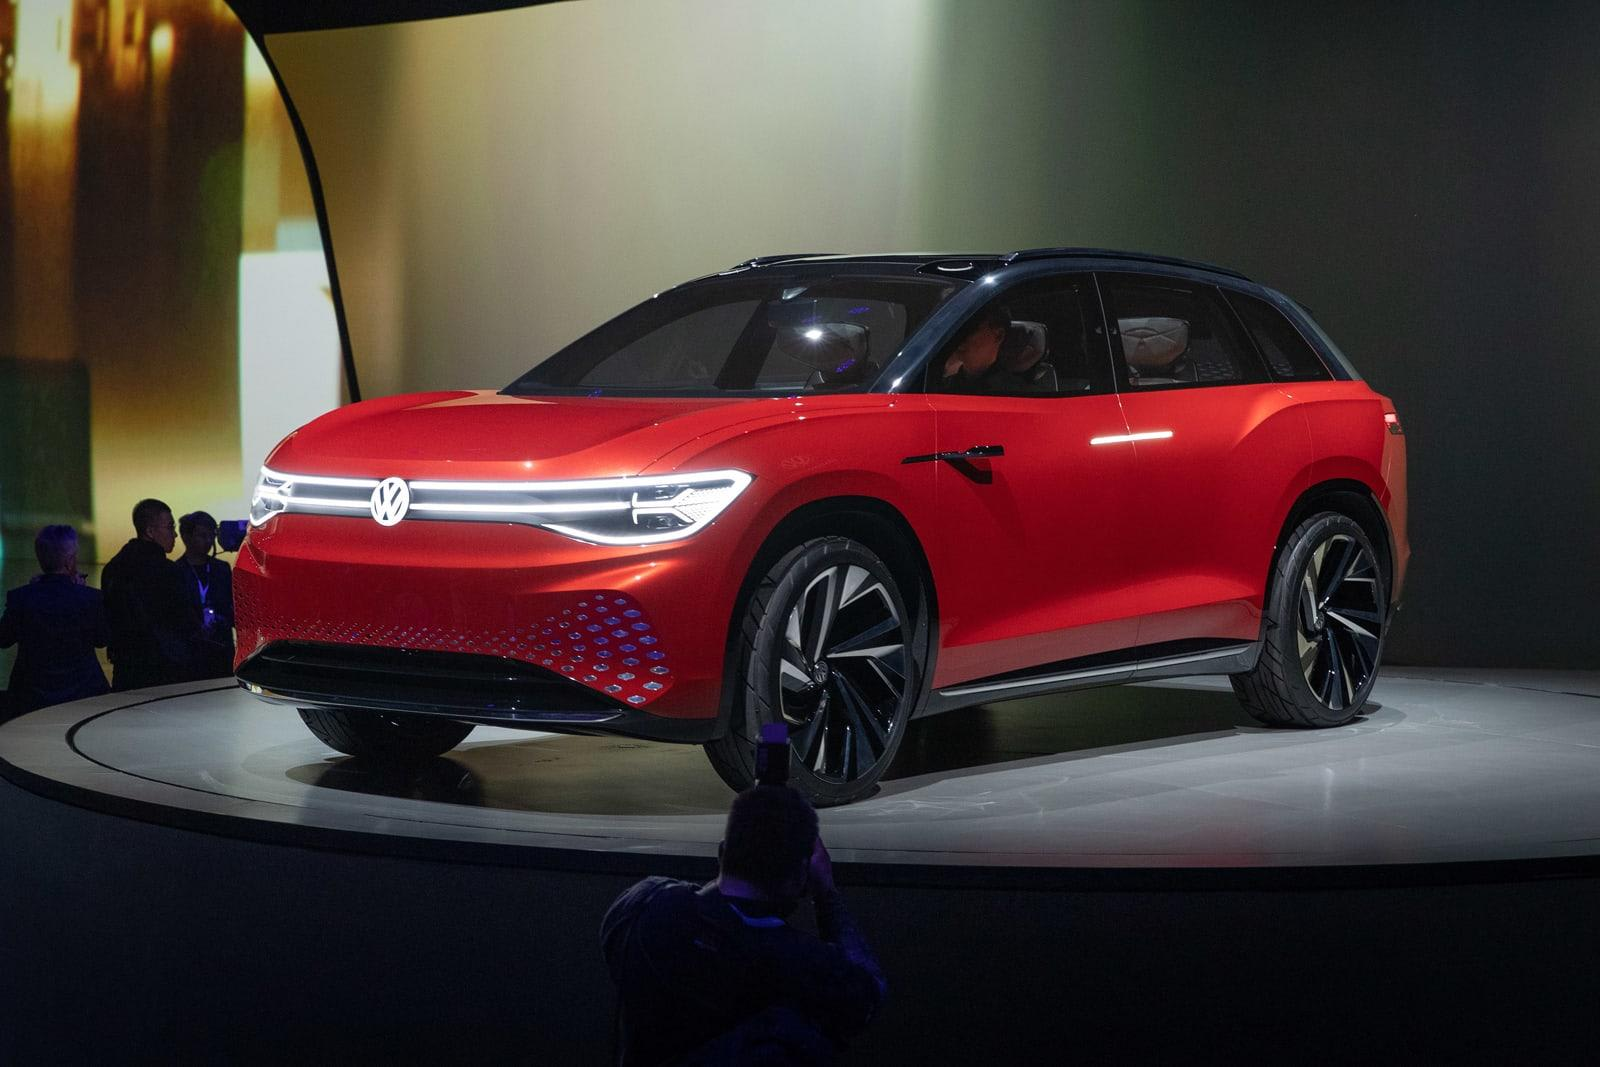 vw's id roomzz previews a fullsize electric suv due in